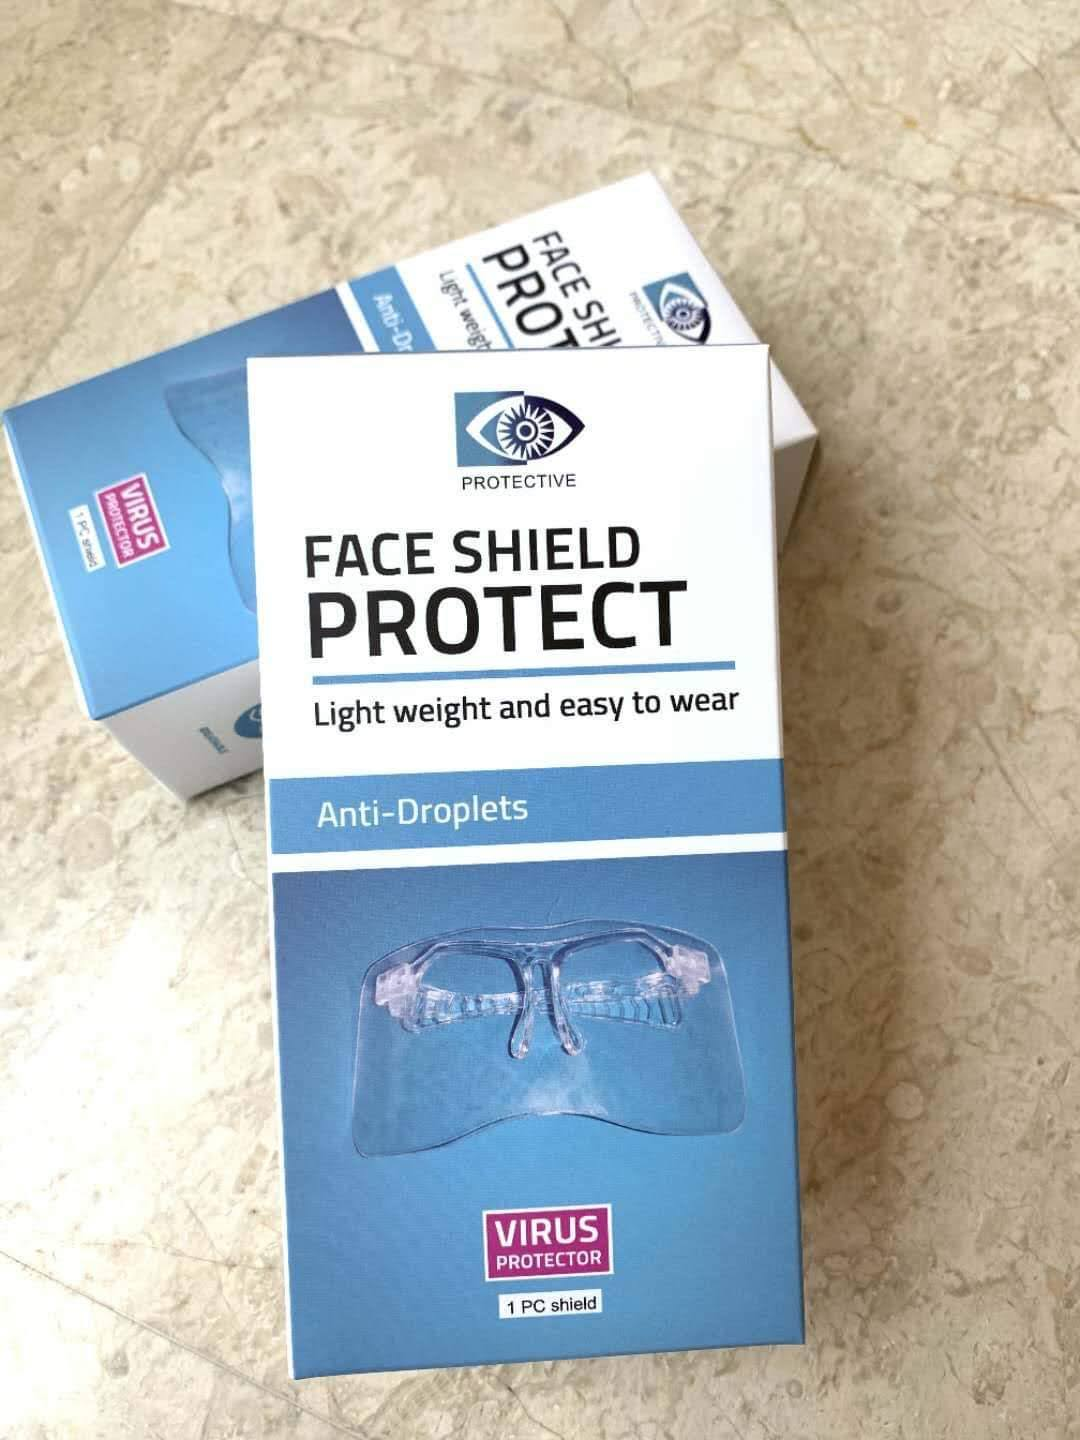 Face Shield Protect